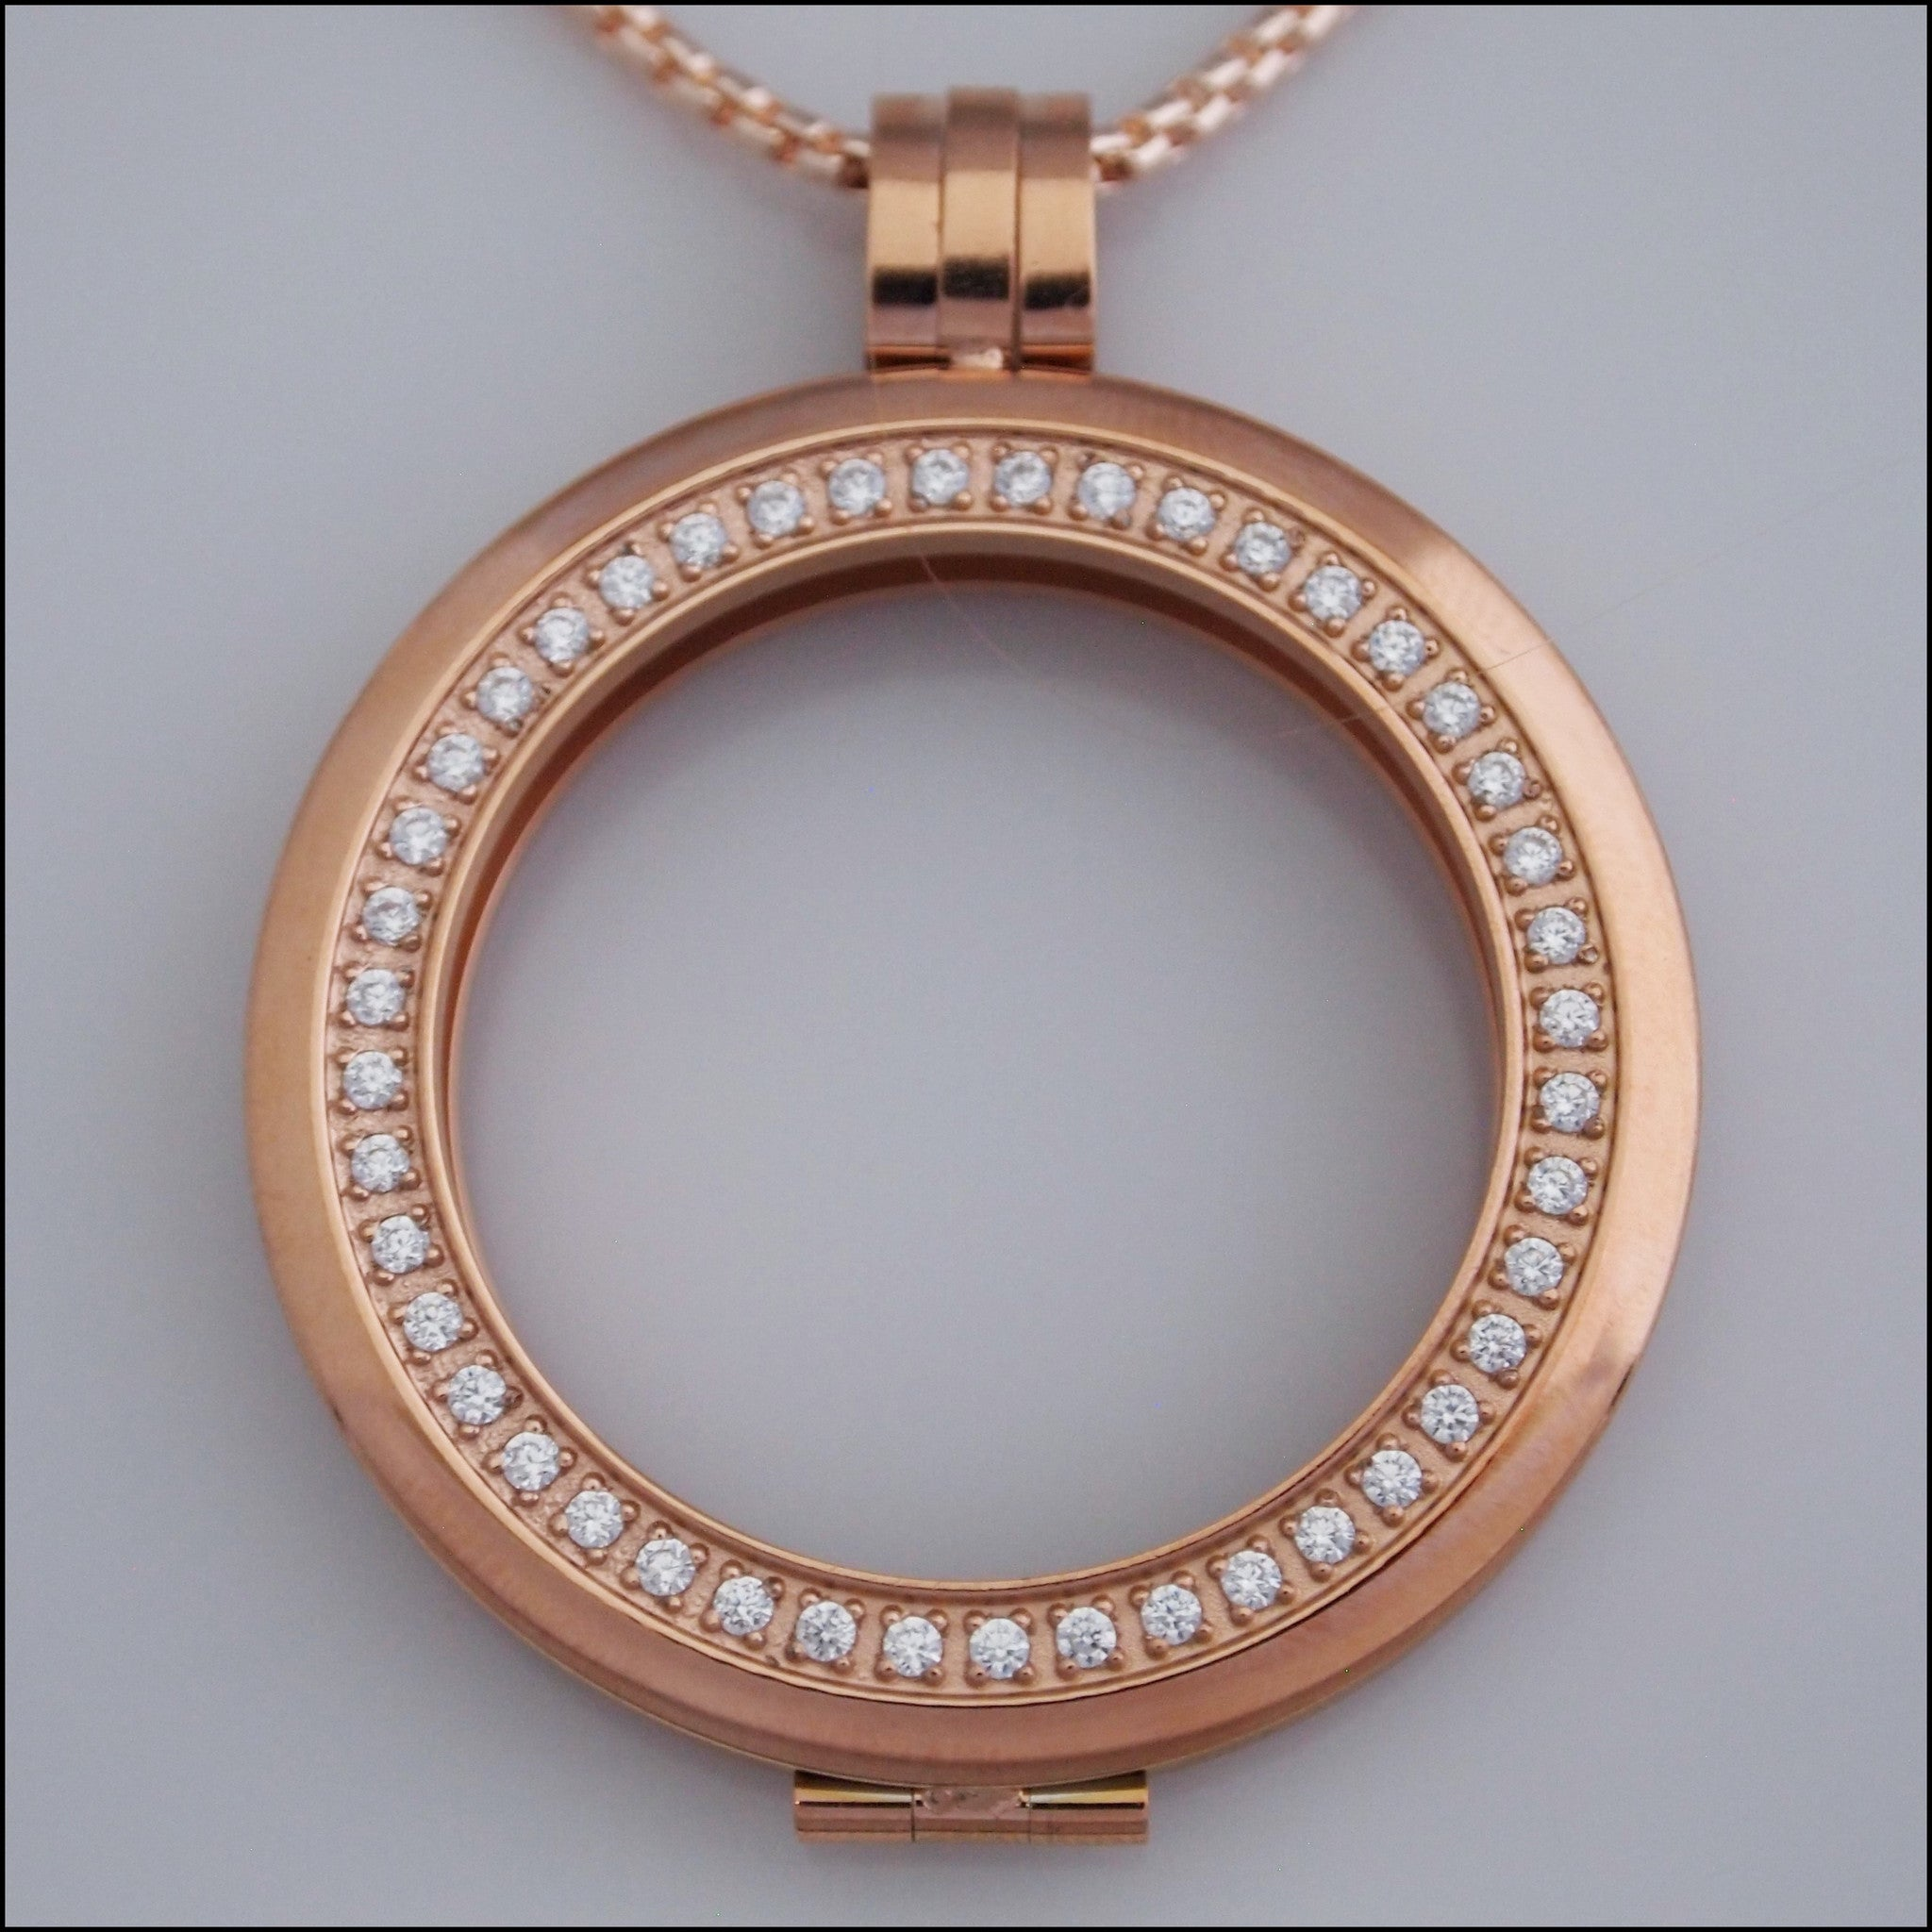 Smooth Surround Crystal Coin Holder Pendant - Rose Gold - Find Something Special